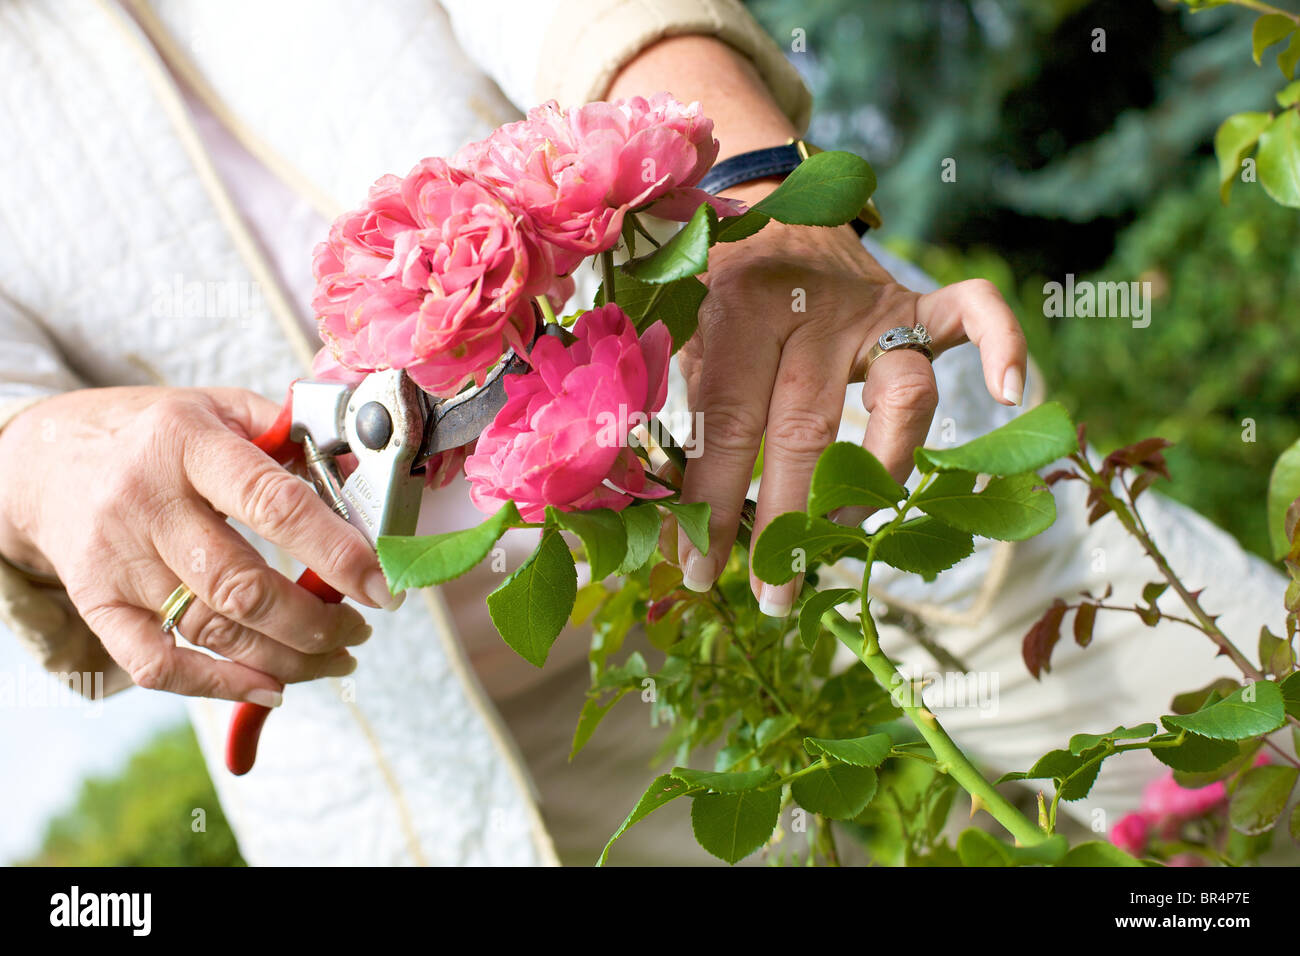 Woman Trimming Roses In Garden Close Up Stock Photo 31452722 Alamy